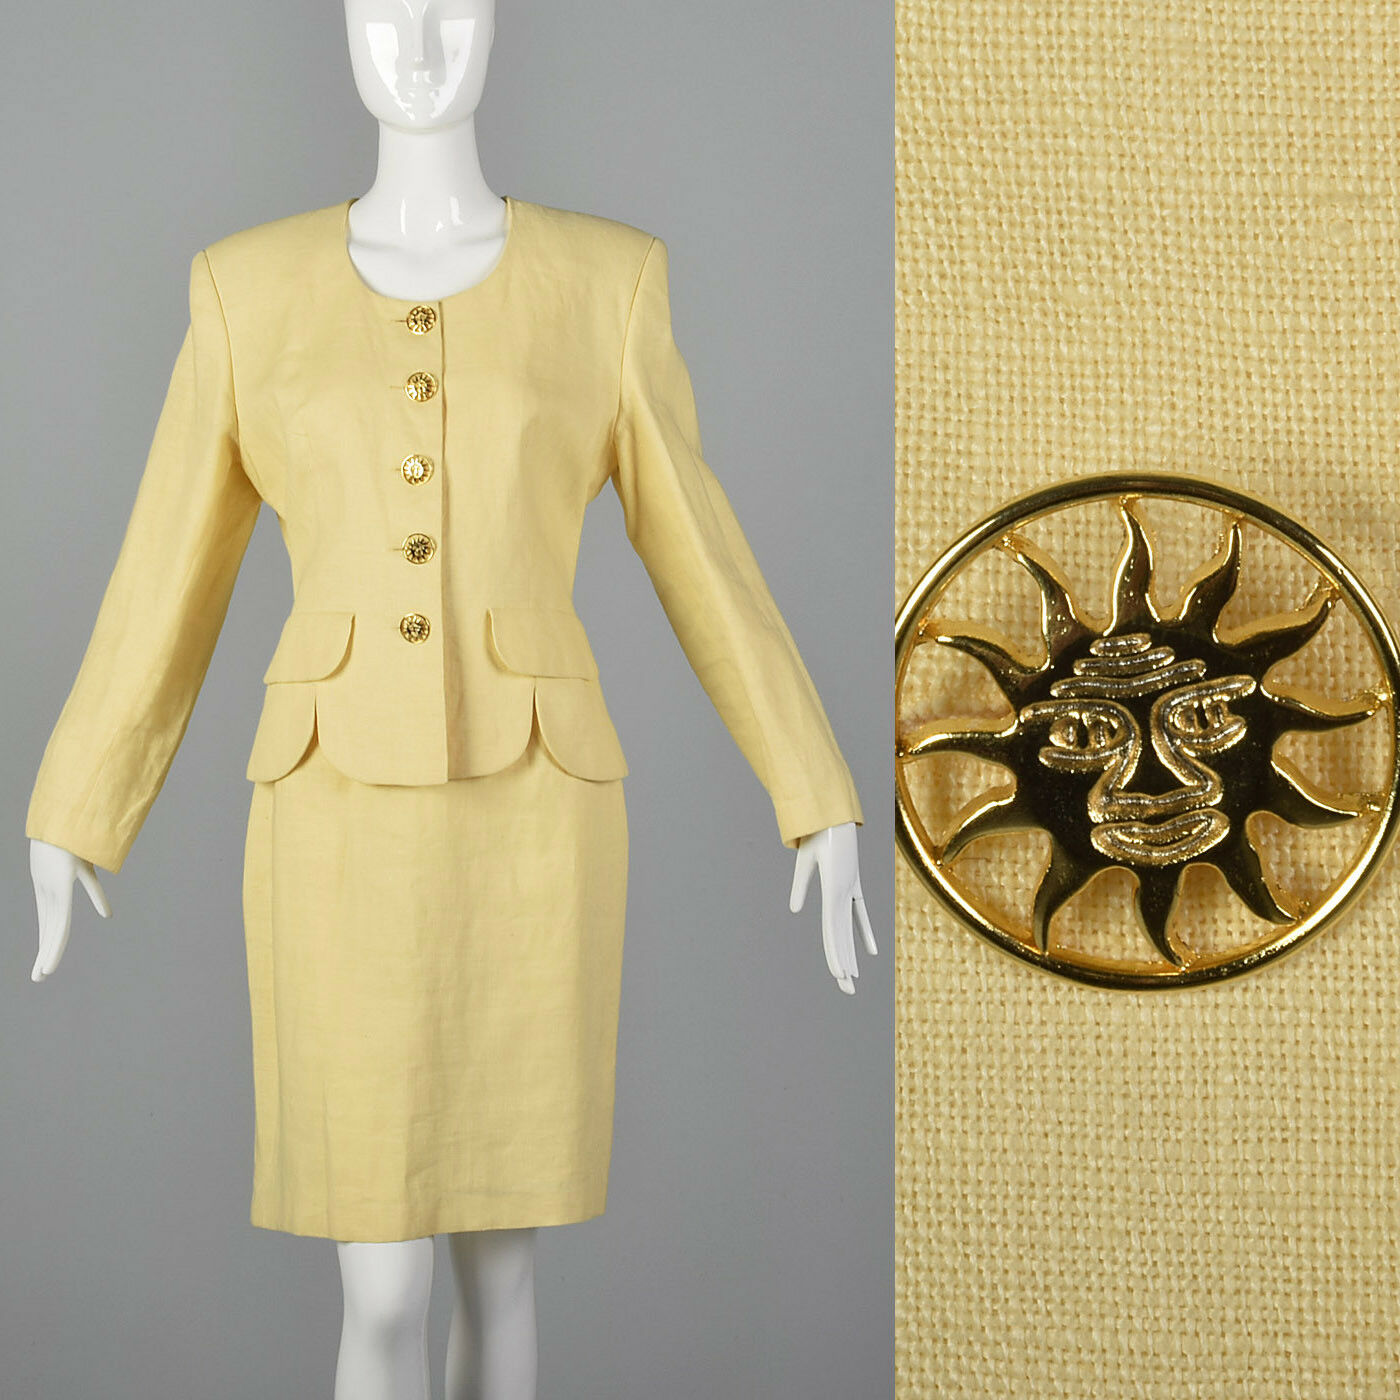 M 1990s Moschino Cheap & Chic Yellow Linen Suit S… - image 1